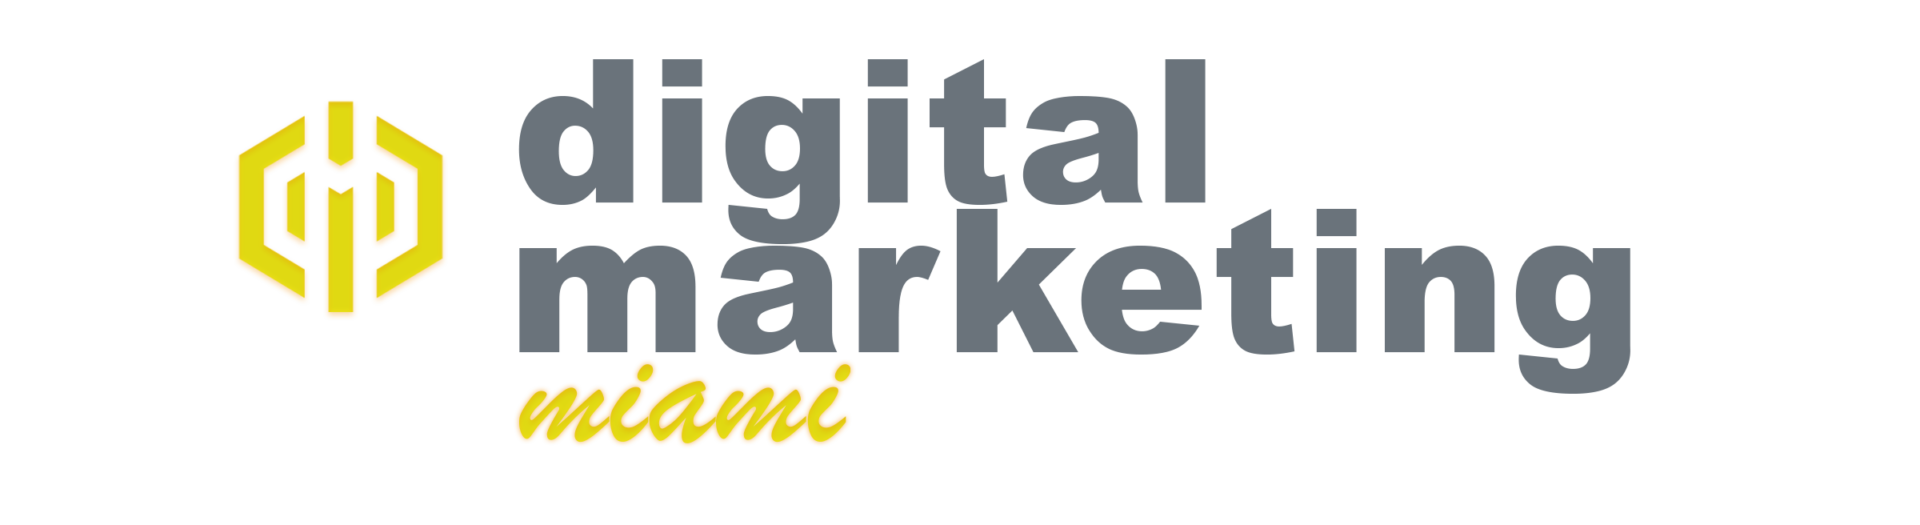 Digital Marketing Miami